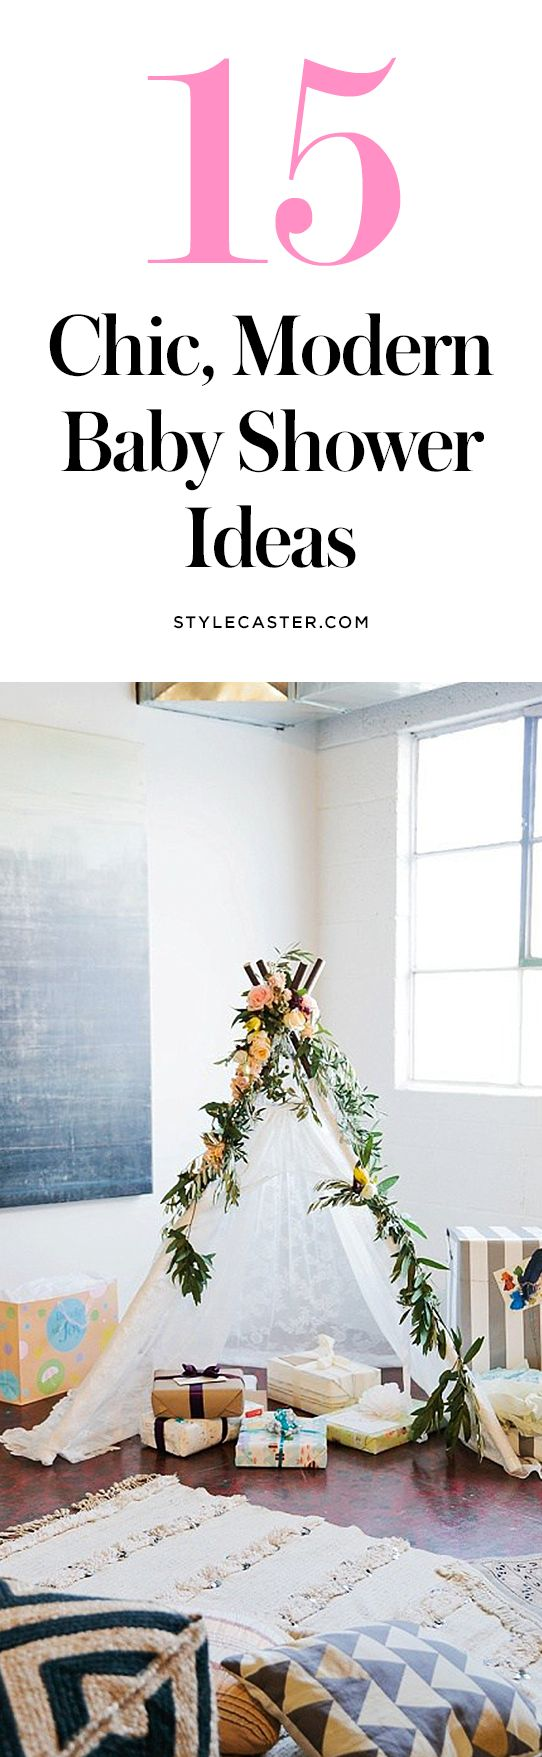 15 Chic & Sophisticated Baby Shower Ideas | Non-cutesy decoration and party ideas